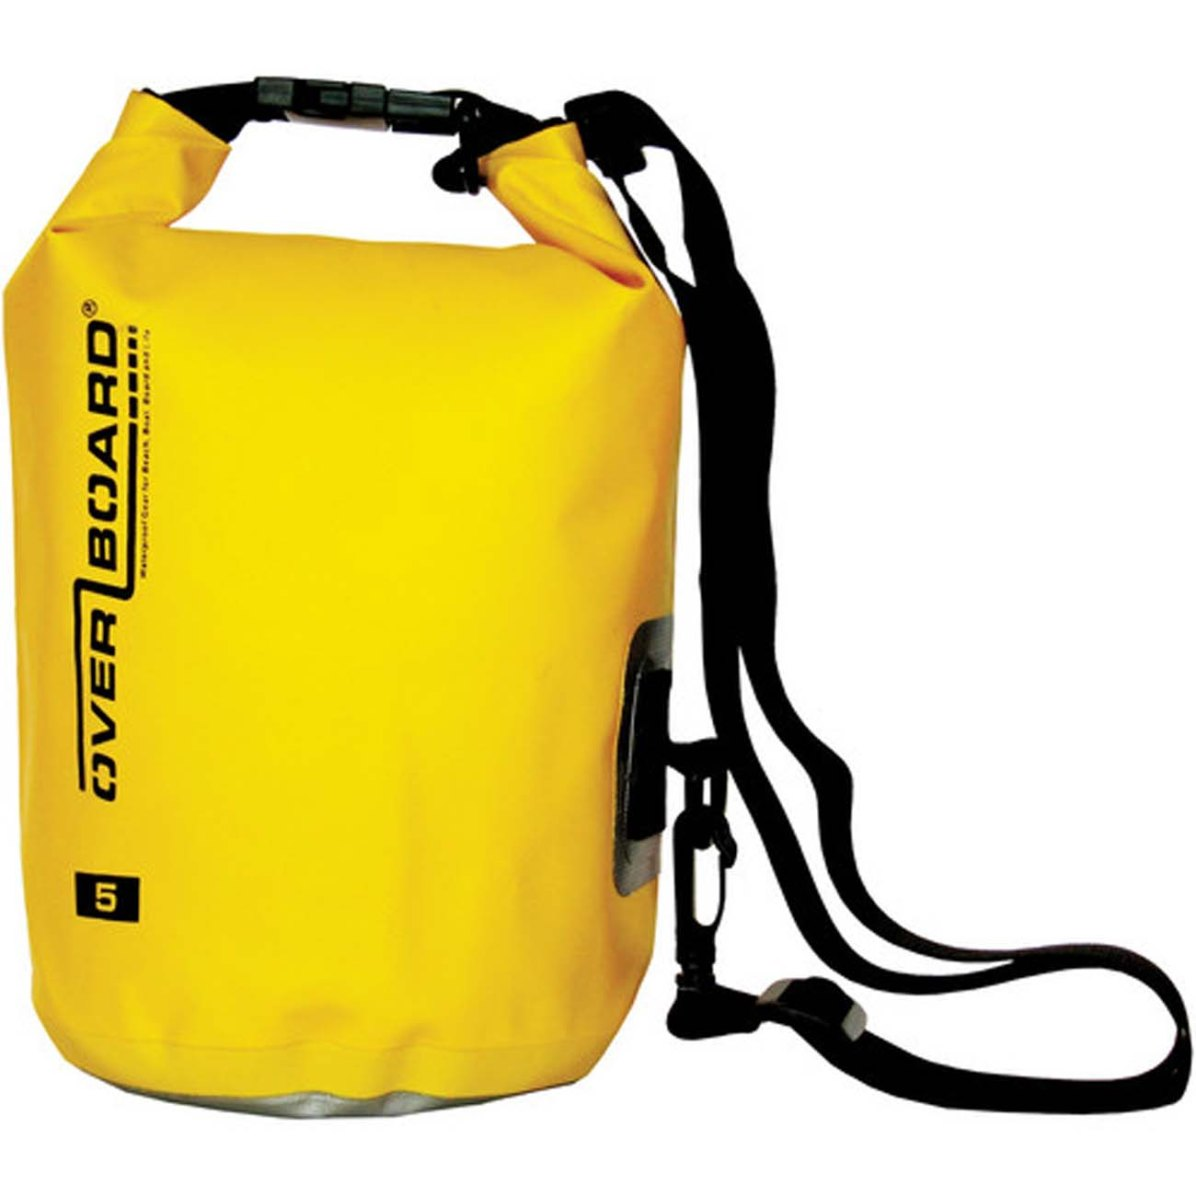 waterproof Bag 01